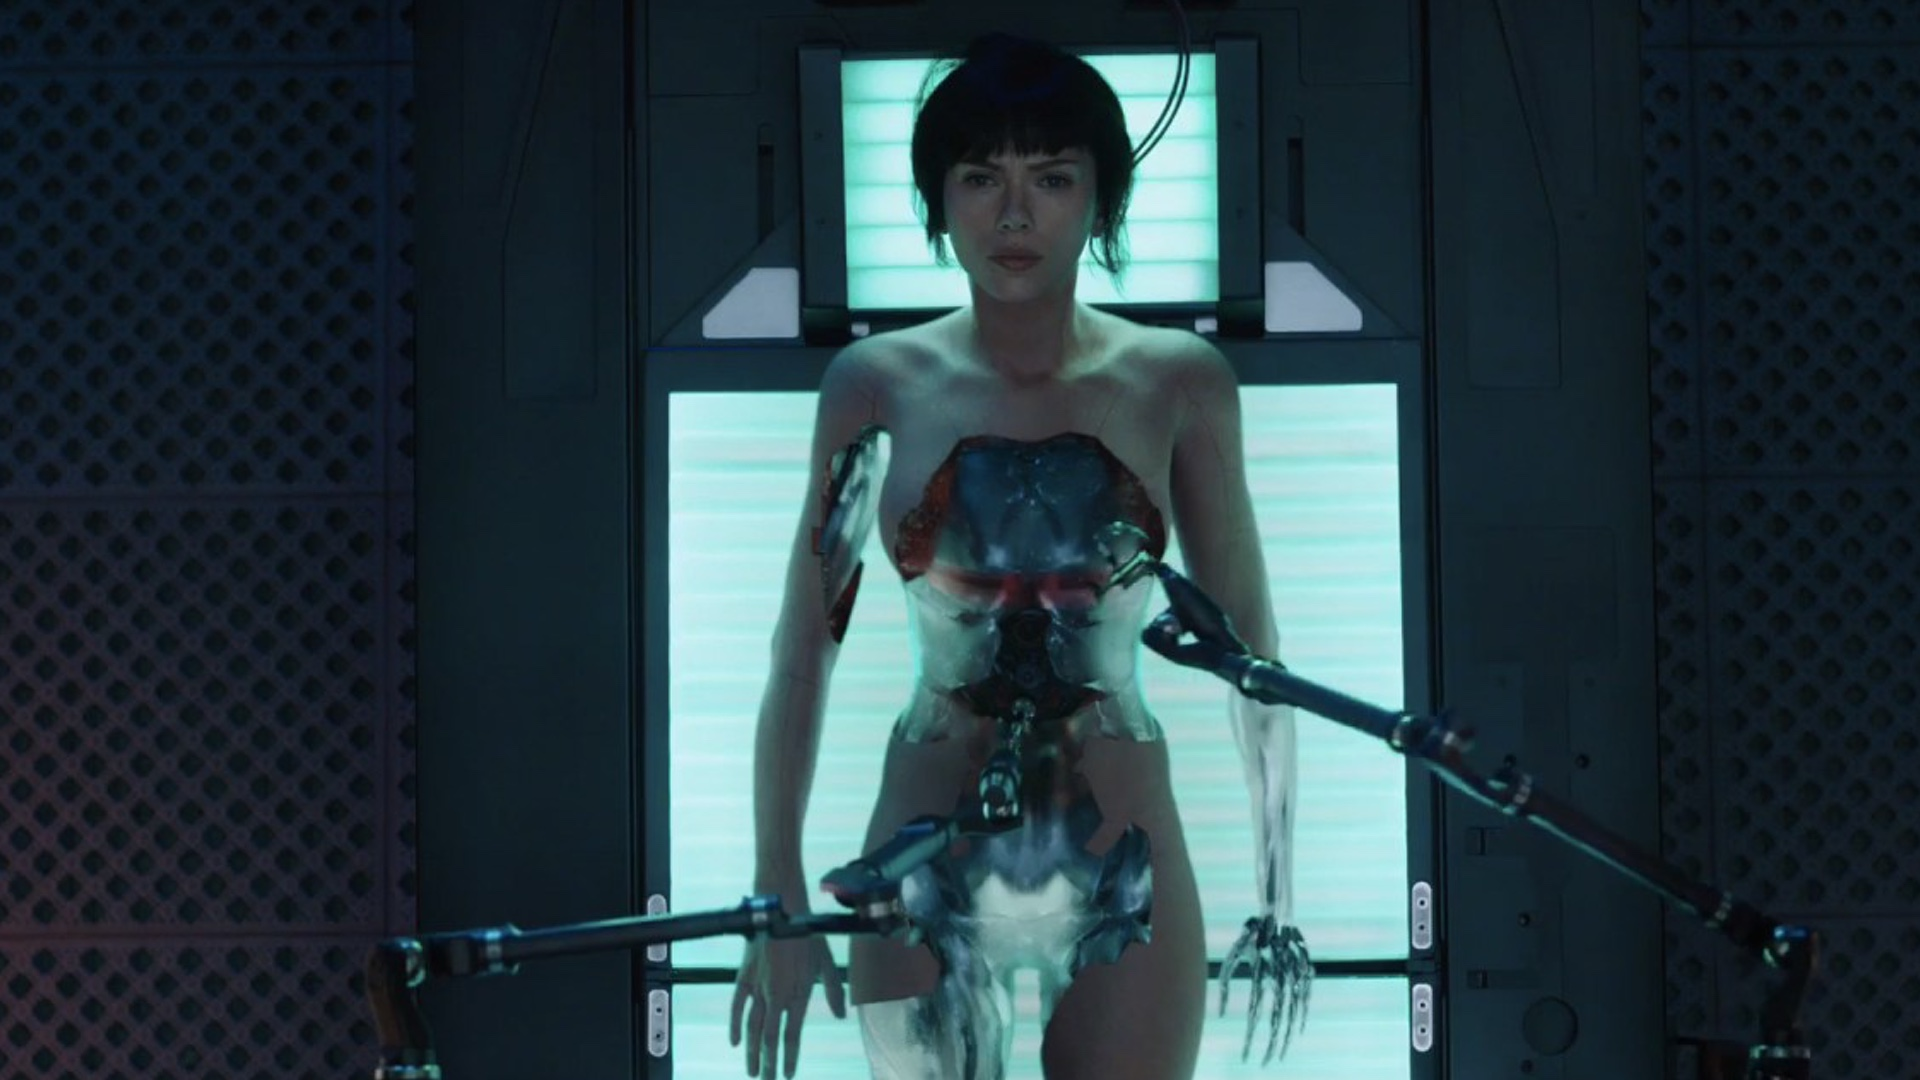 japanese-fans-didnt-have-any-issues-with-scarlett-johansson-starring-in-ghost-in-the-shell